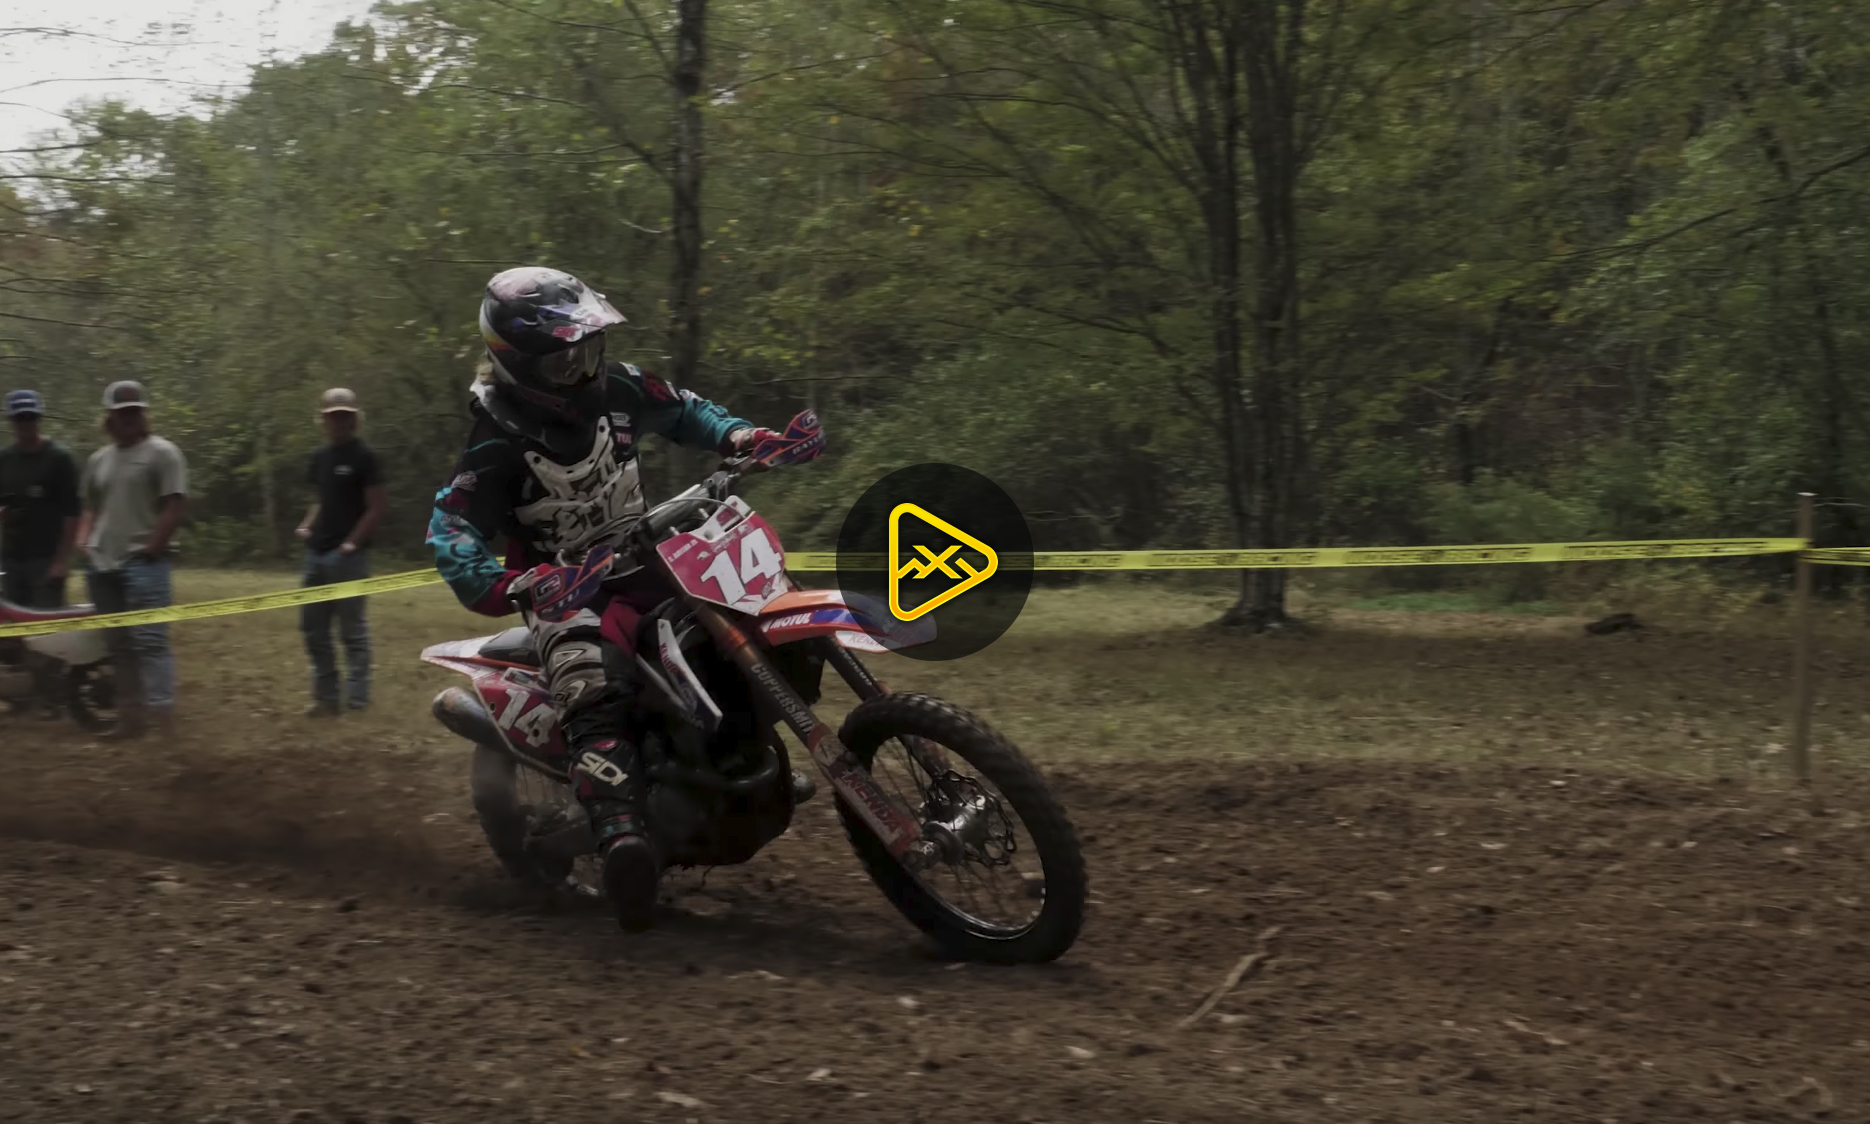 2017 Full Gas Sprint Enduro Series – Round 08 Highlights